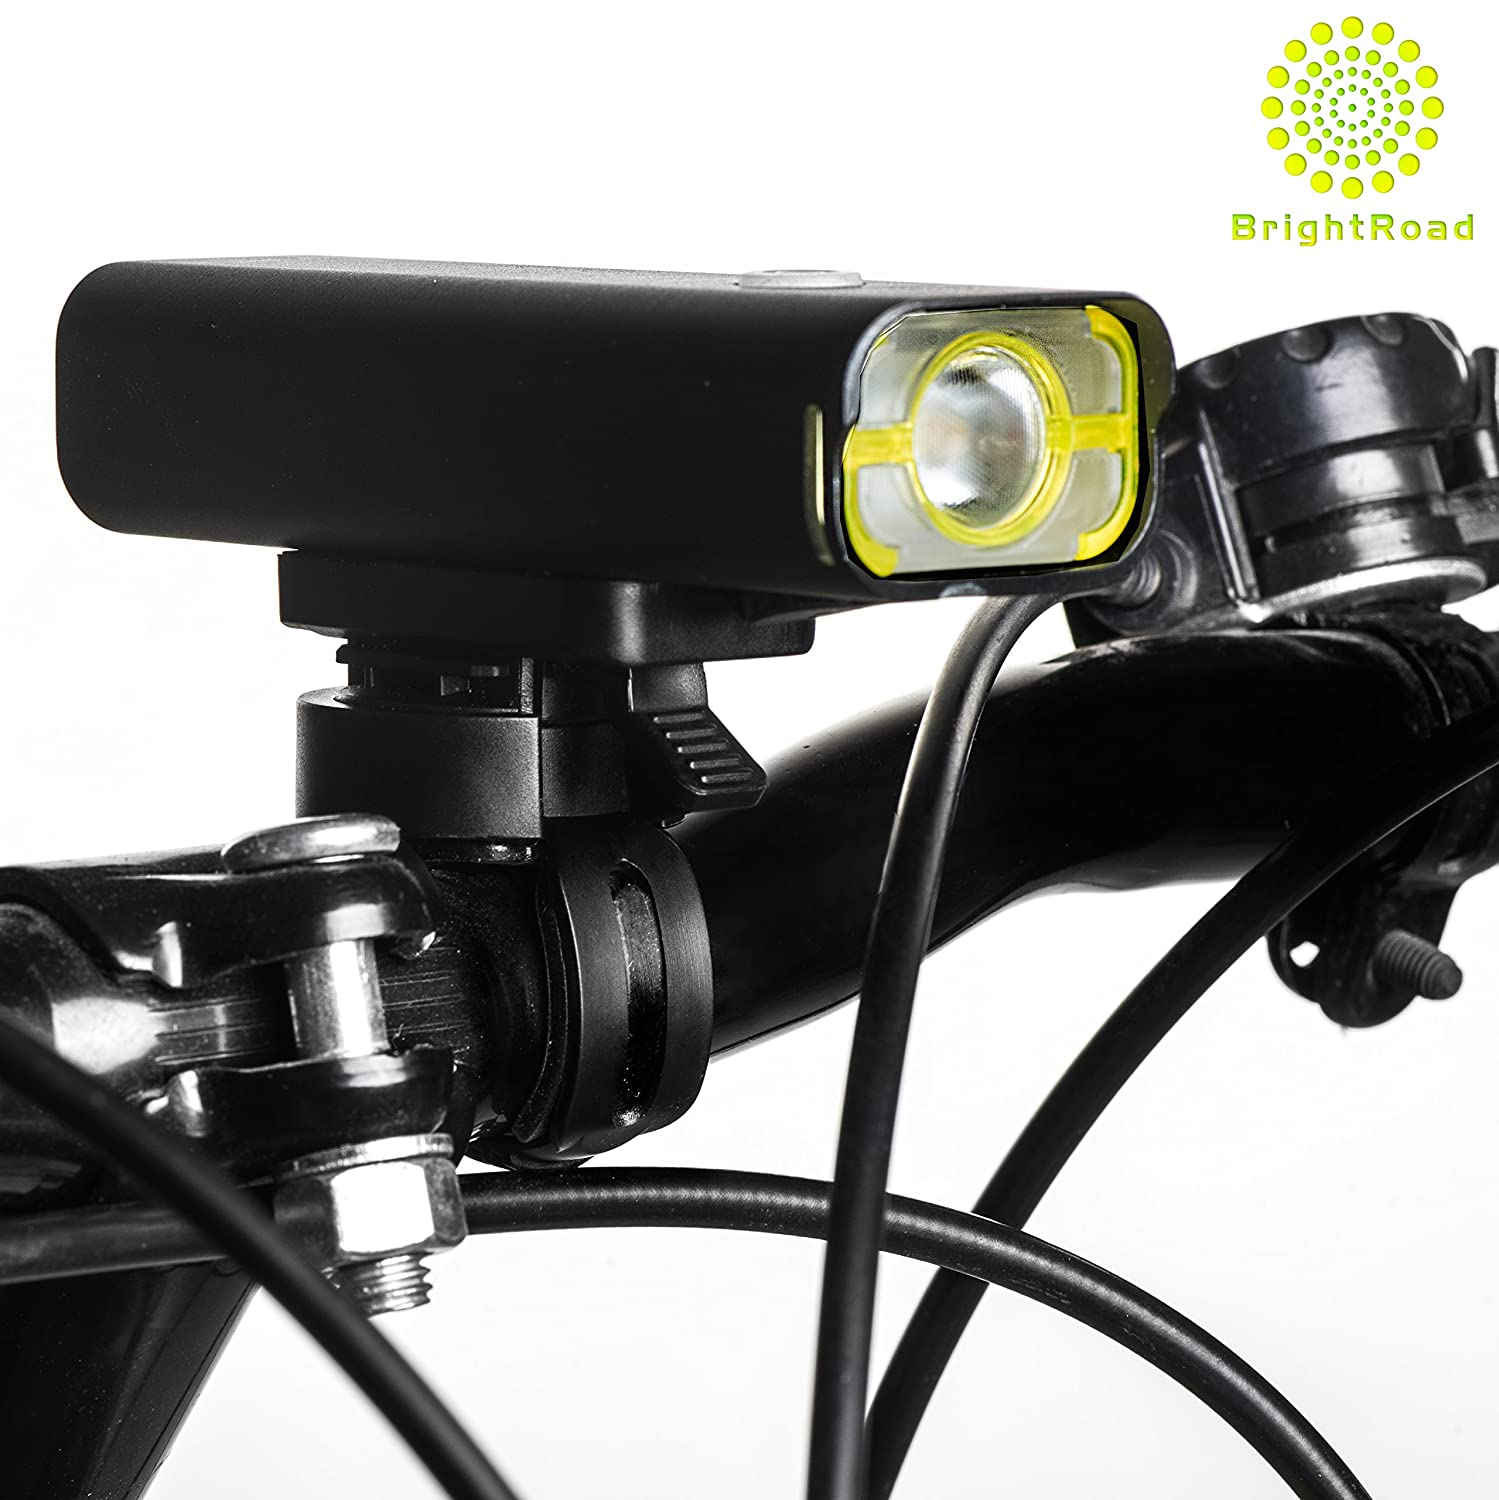 USB Rechargeable Bicycle Light with 650 ft Visibility 85/° Light Angle IPX6 Waterproof Lights for Cycling BR-800 BrightRoad 800 Lumens LED Bike Headlight with 360/° Rotation 5 Modes Flashlight